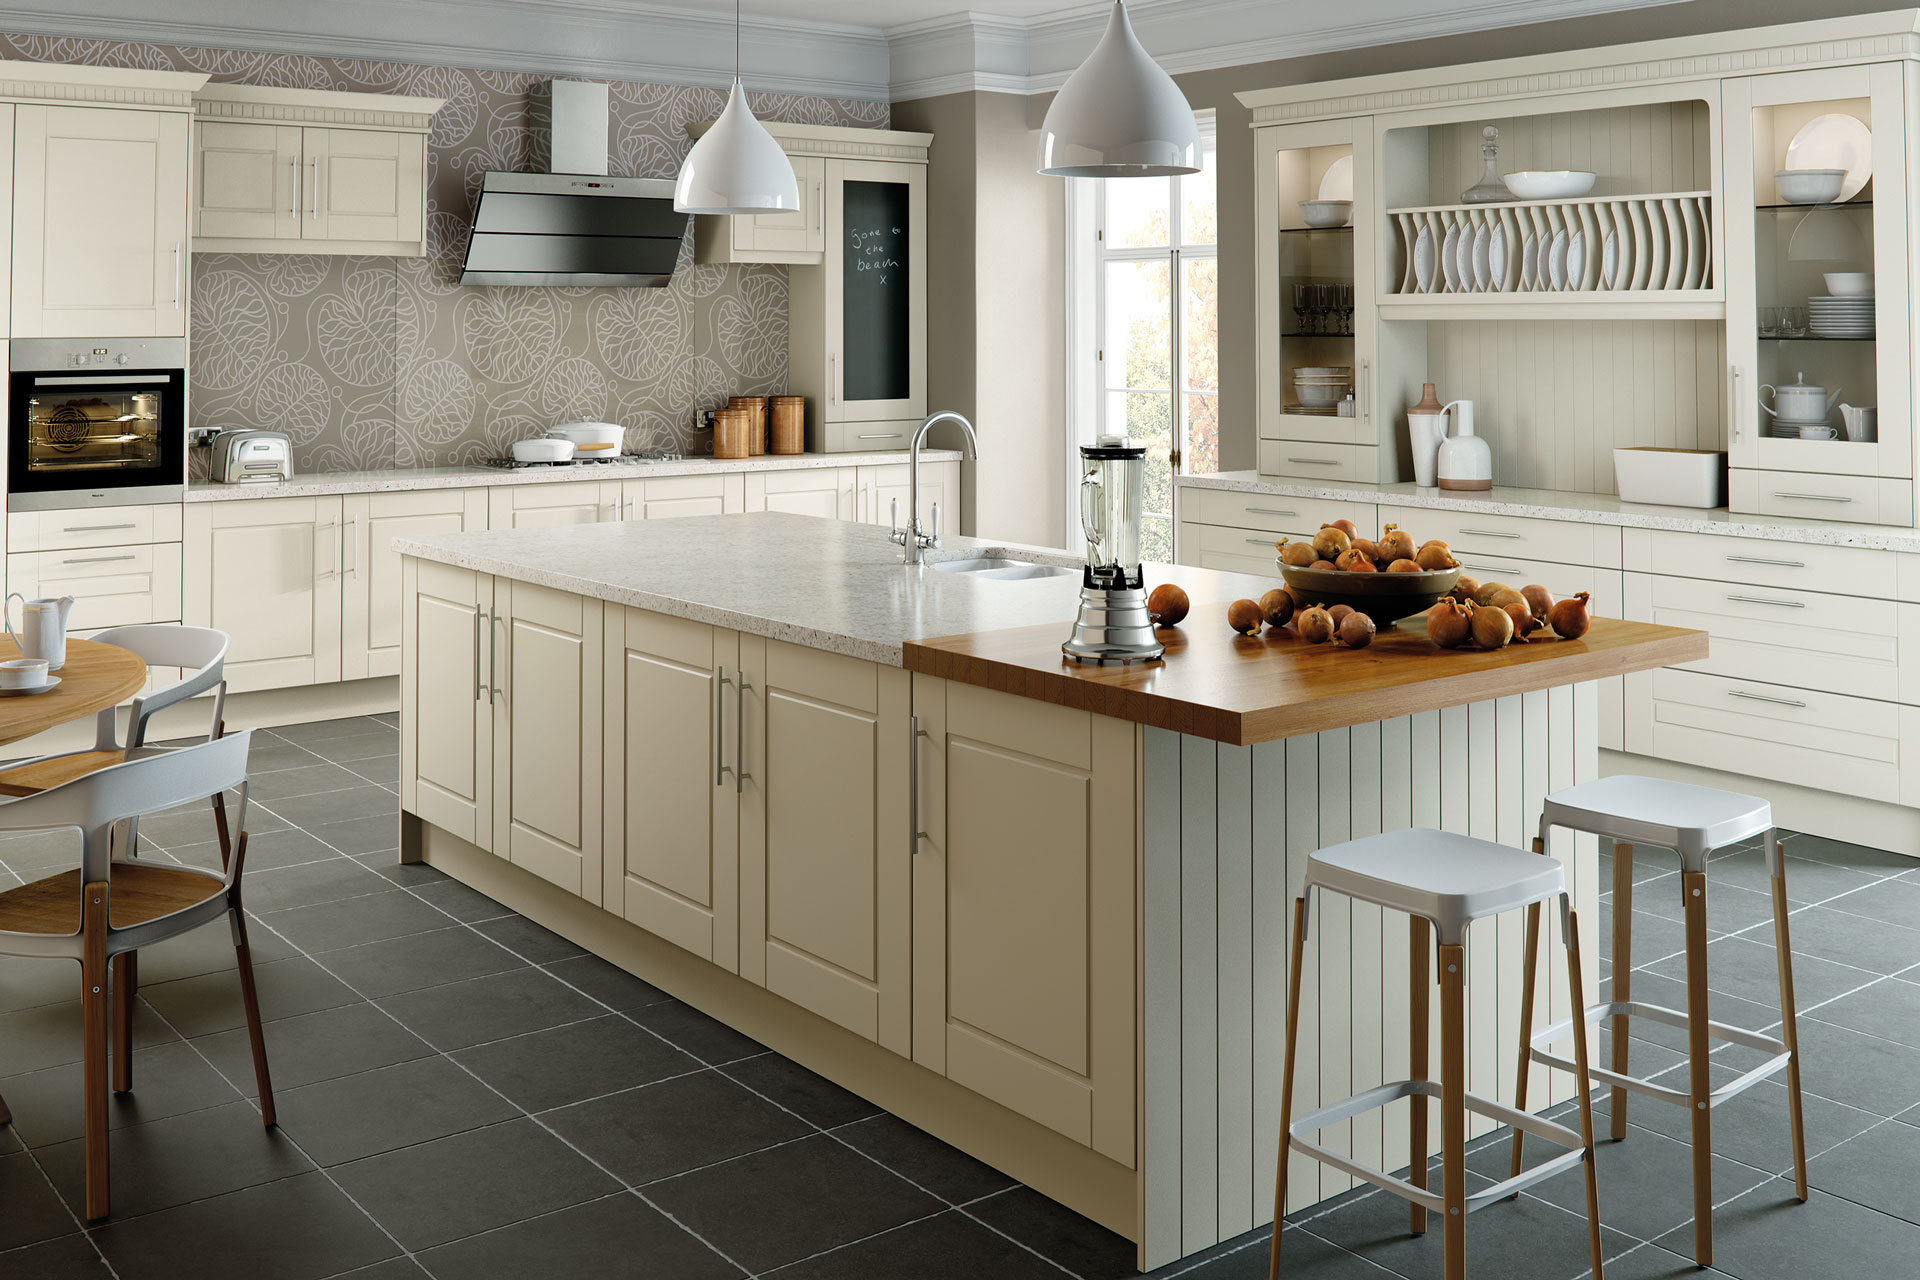 Bloomfield interiors kitchen - surrey